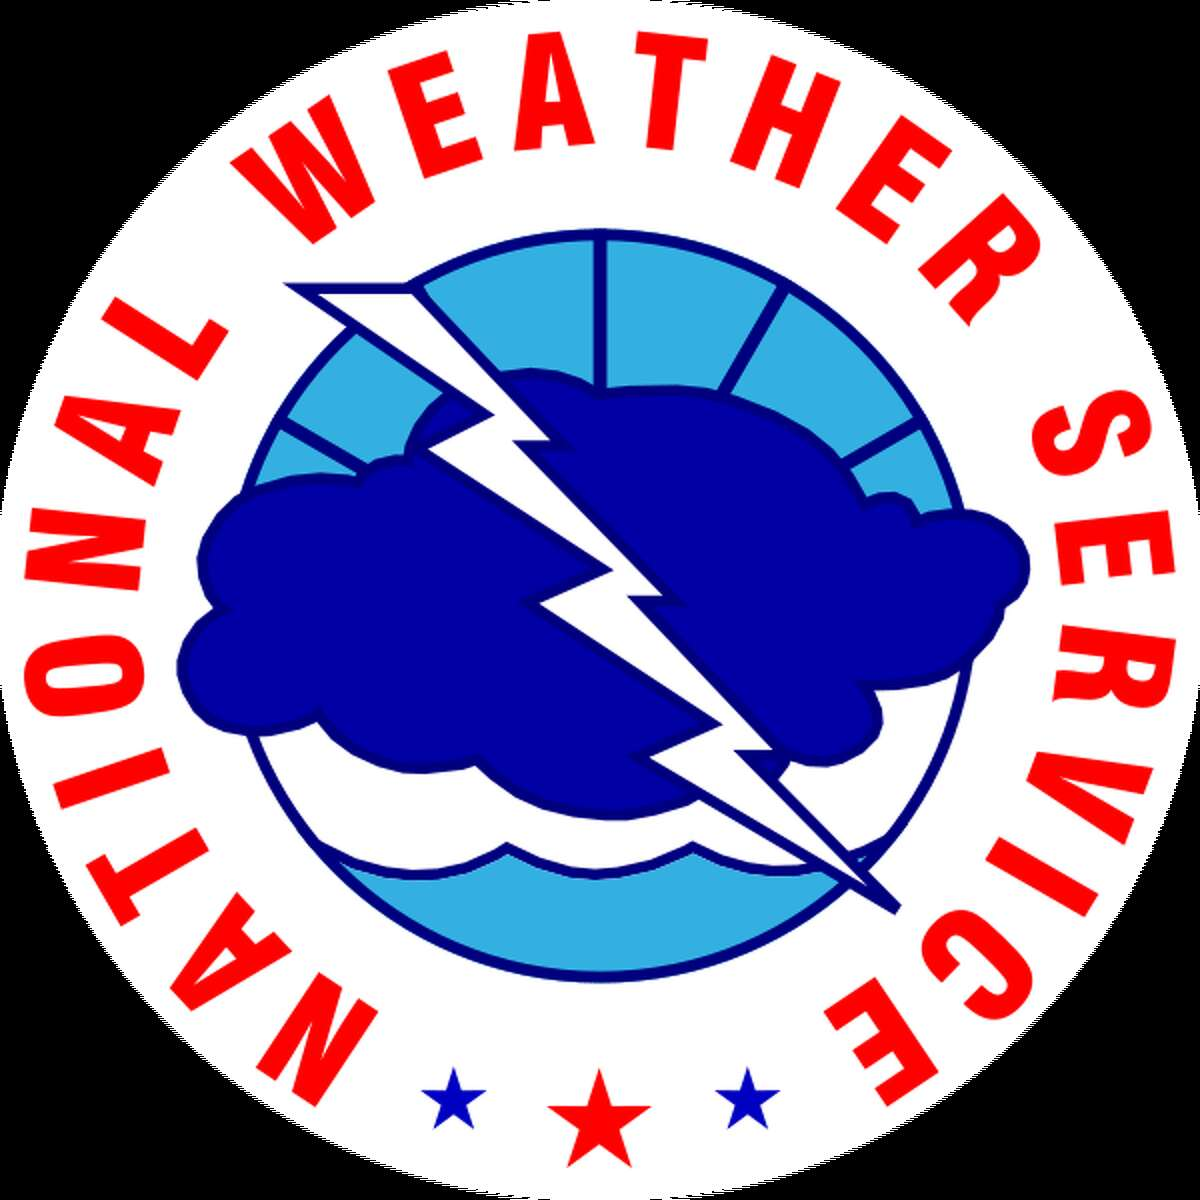 The National Weather Service in League City has issued a tornado warning for northeastern Fort Bend County and Harris County until 9:45 a.m.